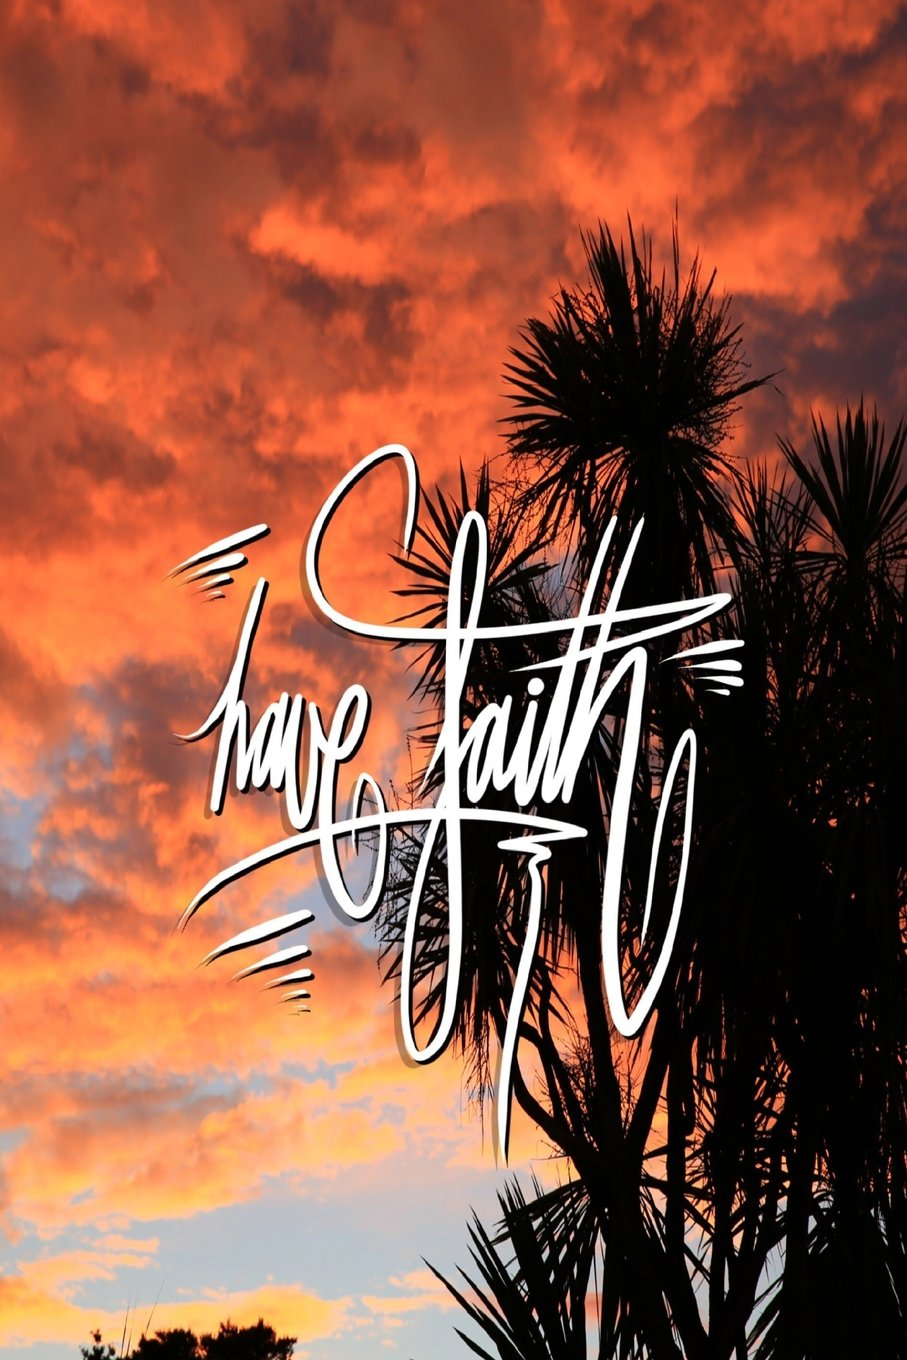 Read Online Have Faith: 6x9 Inch Lined Journal/Notebook designed to remind you to have faith, don't doubt... Beleive!! - Magical, Pink, Sunset, Tree, Nature, Colorful, Calligraphy Art with photography, Gift idea ebook